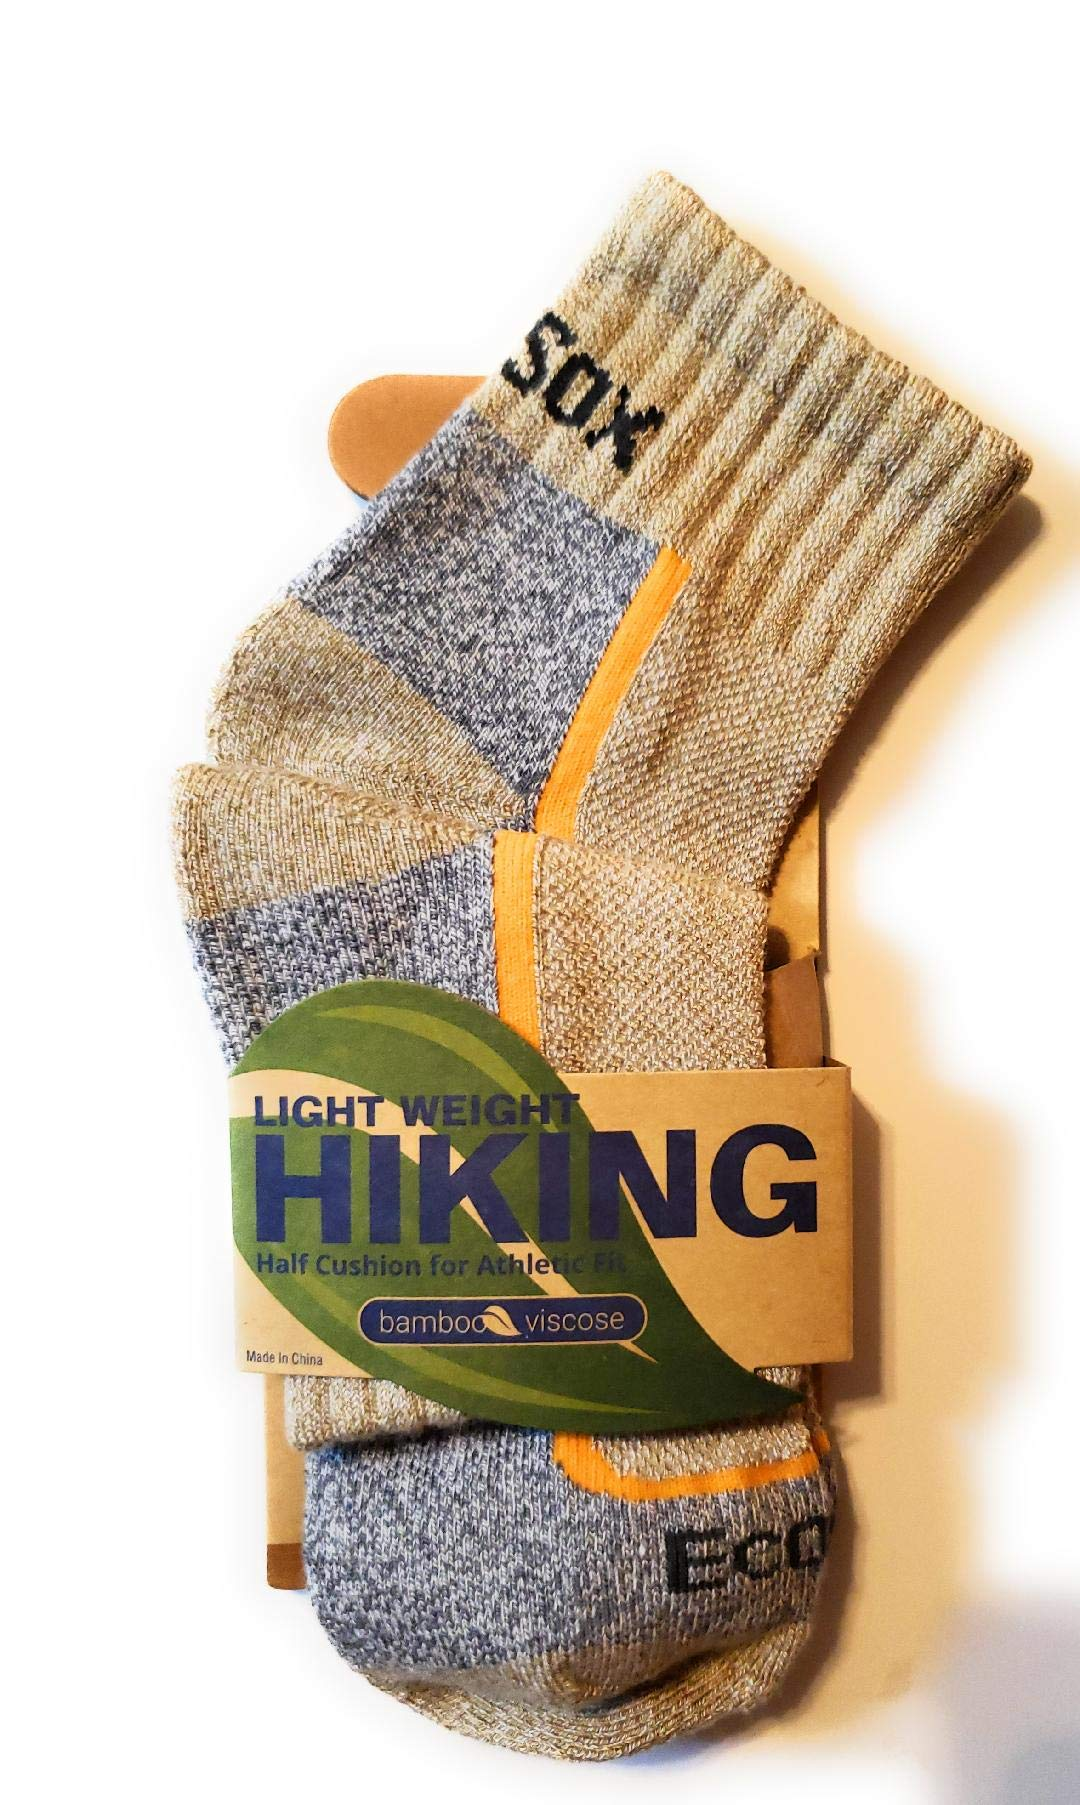 EcoSox Bamboo Viscose - Active Sport Light Weight Quarter Hiking Sock - [ Quanity options ] (Small 7-9 [3 pack], Tan/Grey) by Ecosox